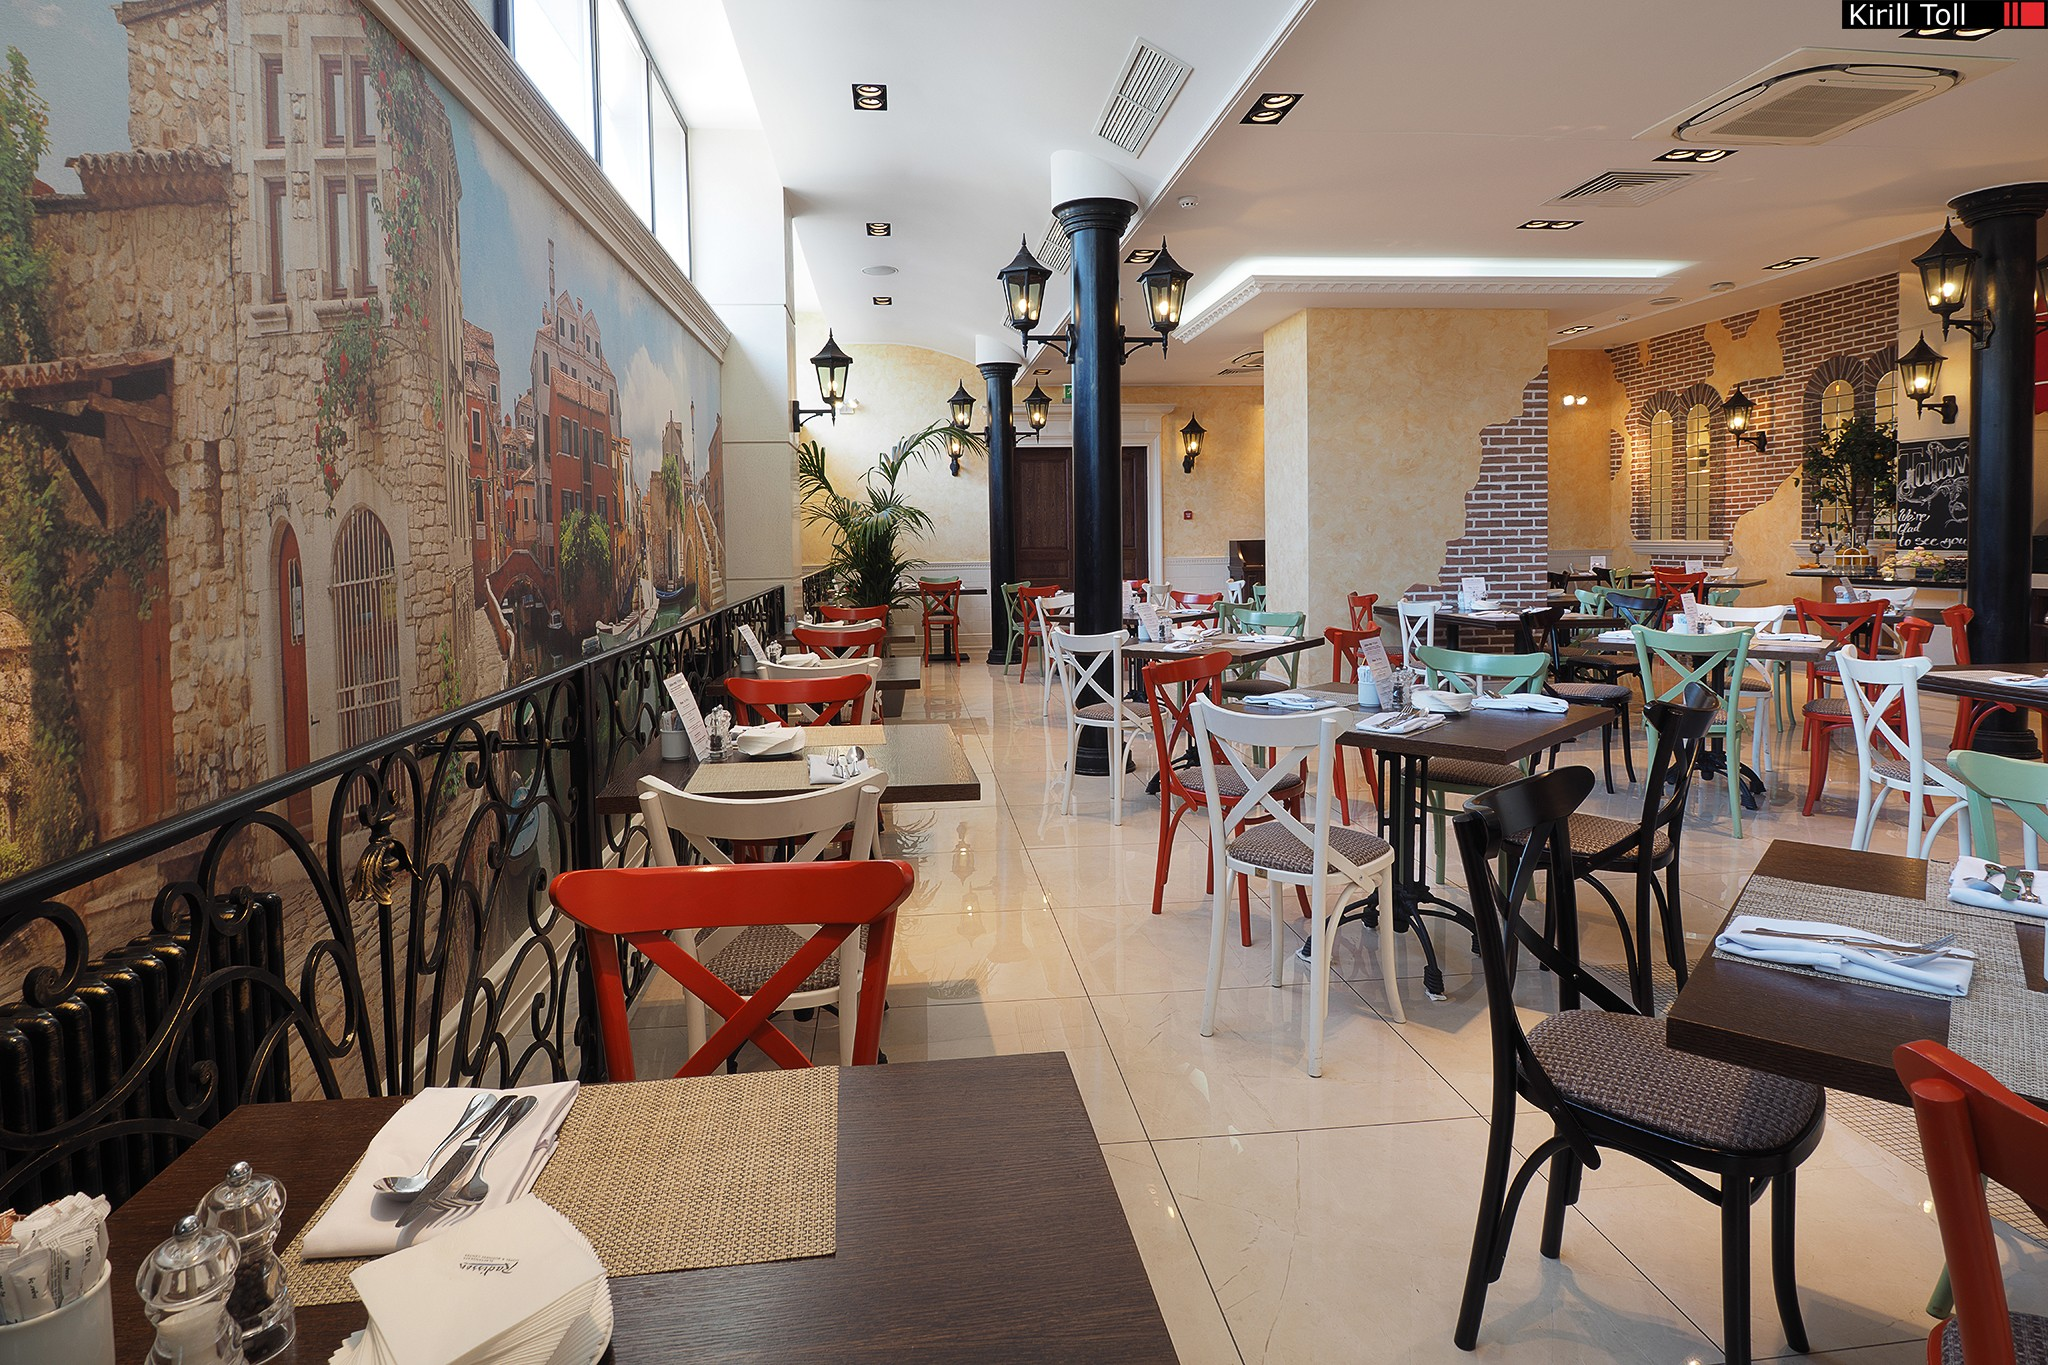 Restaurant with a buffet. Real estate photographer Kirill Toll